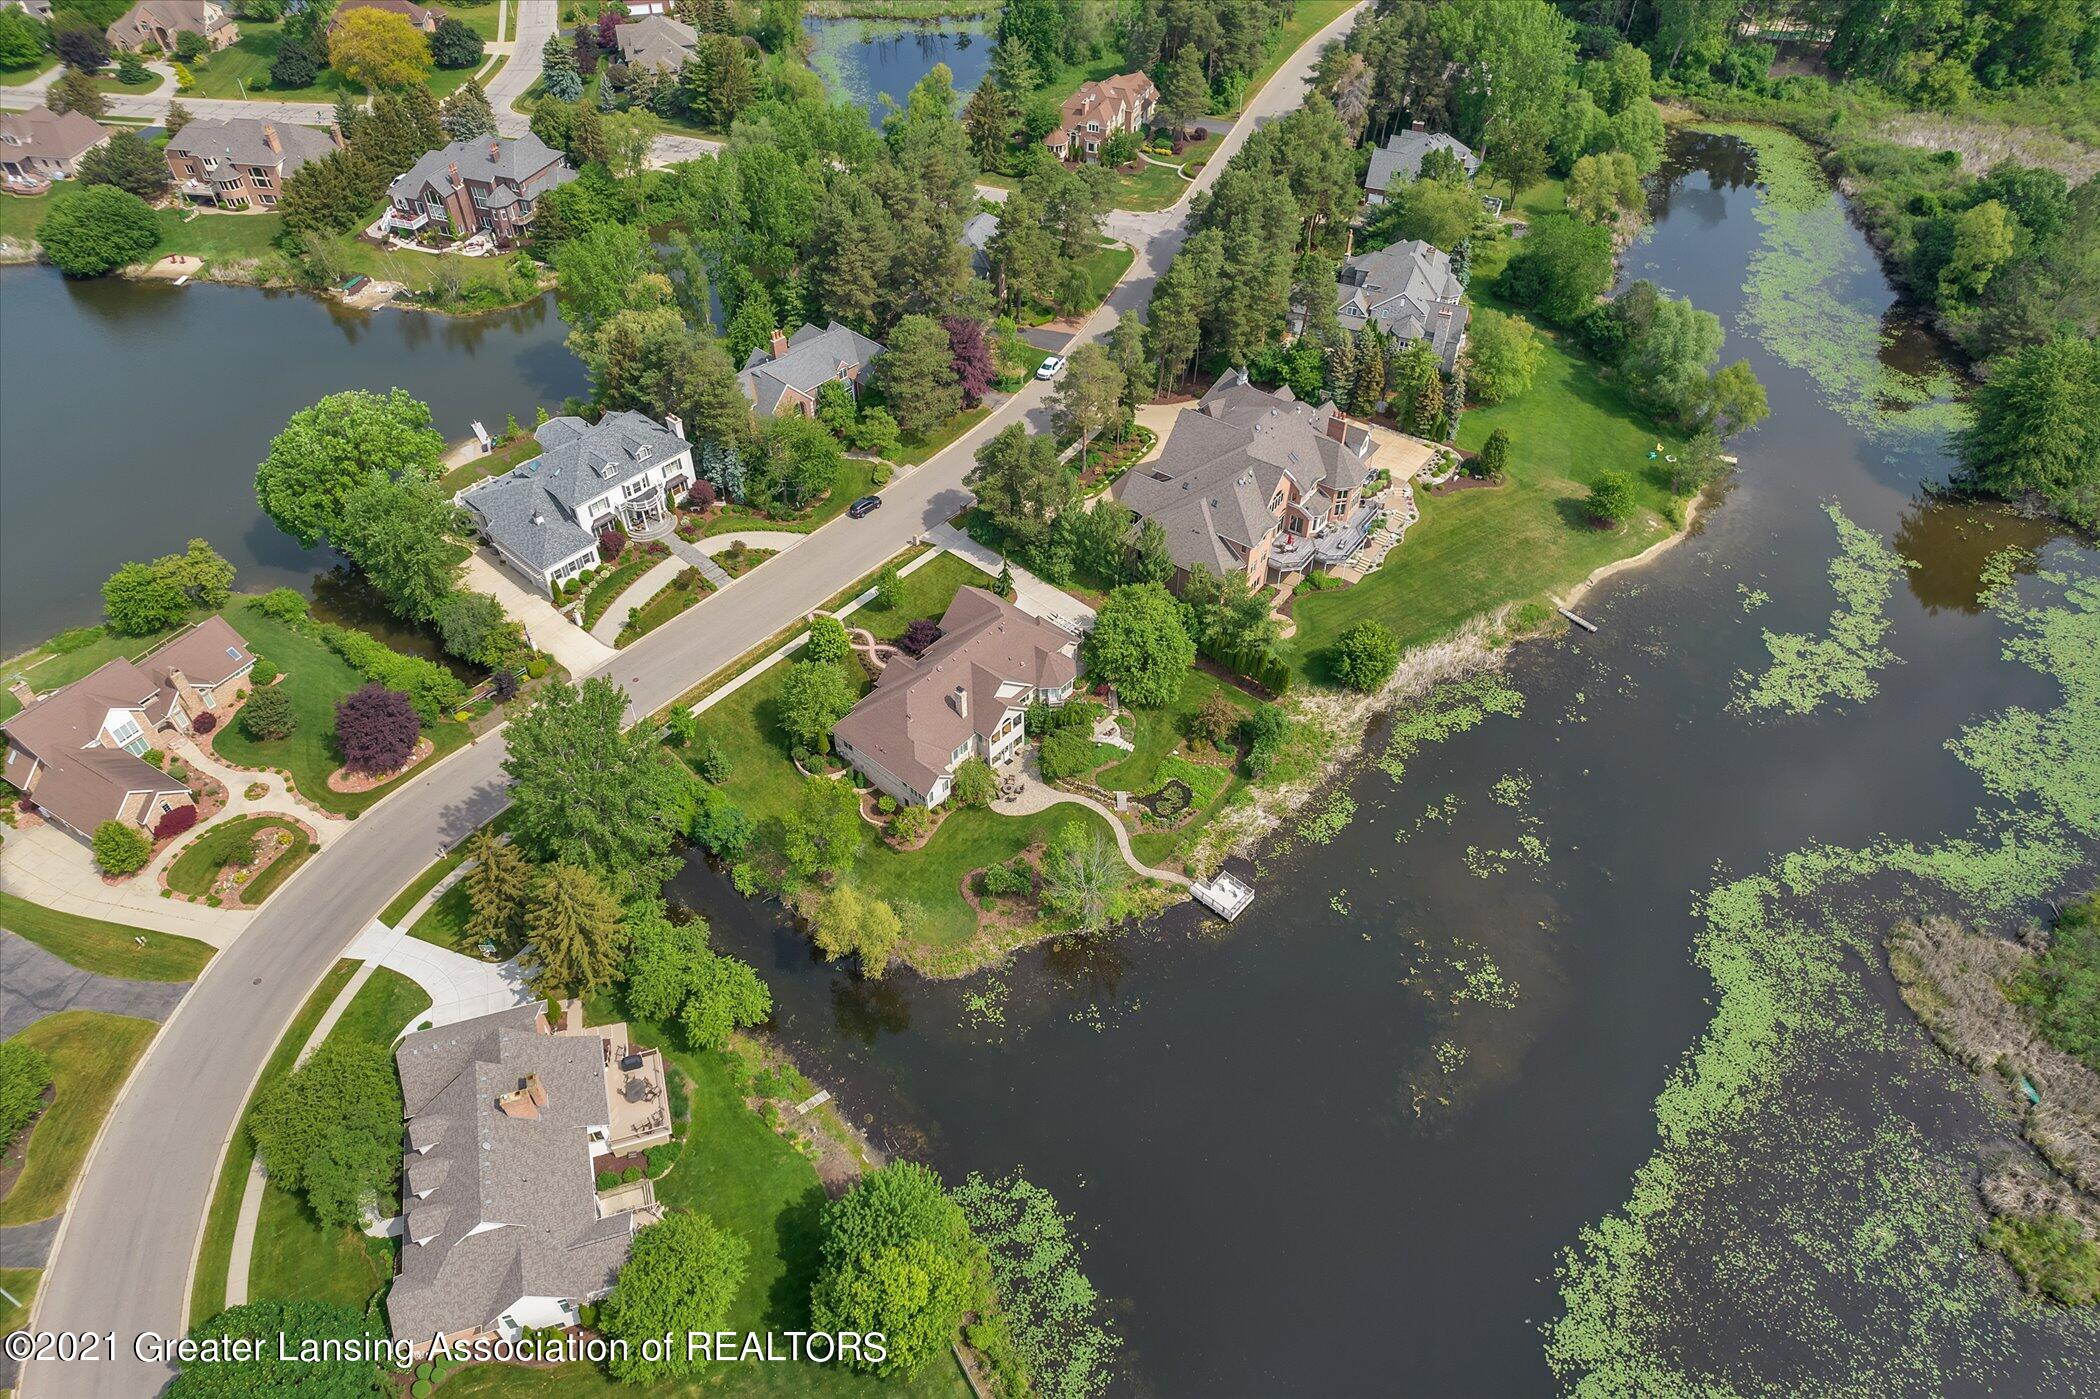 6330 Pine Hollow Dr - EXTERIOR Aerial View - 66